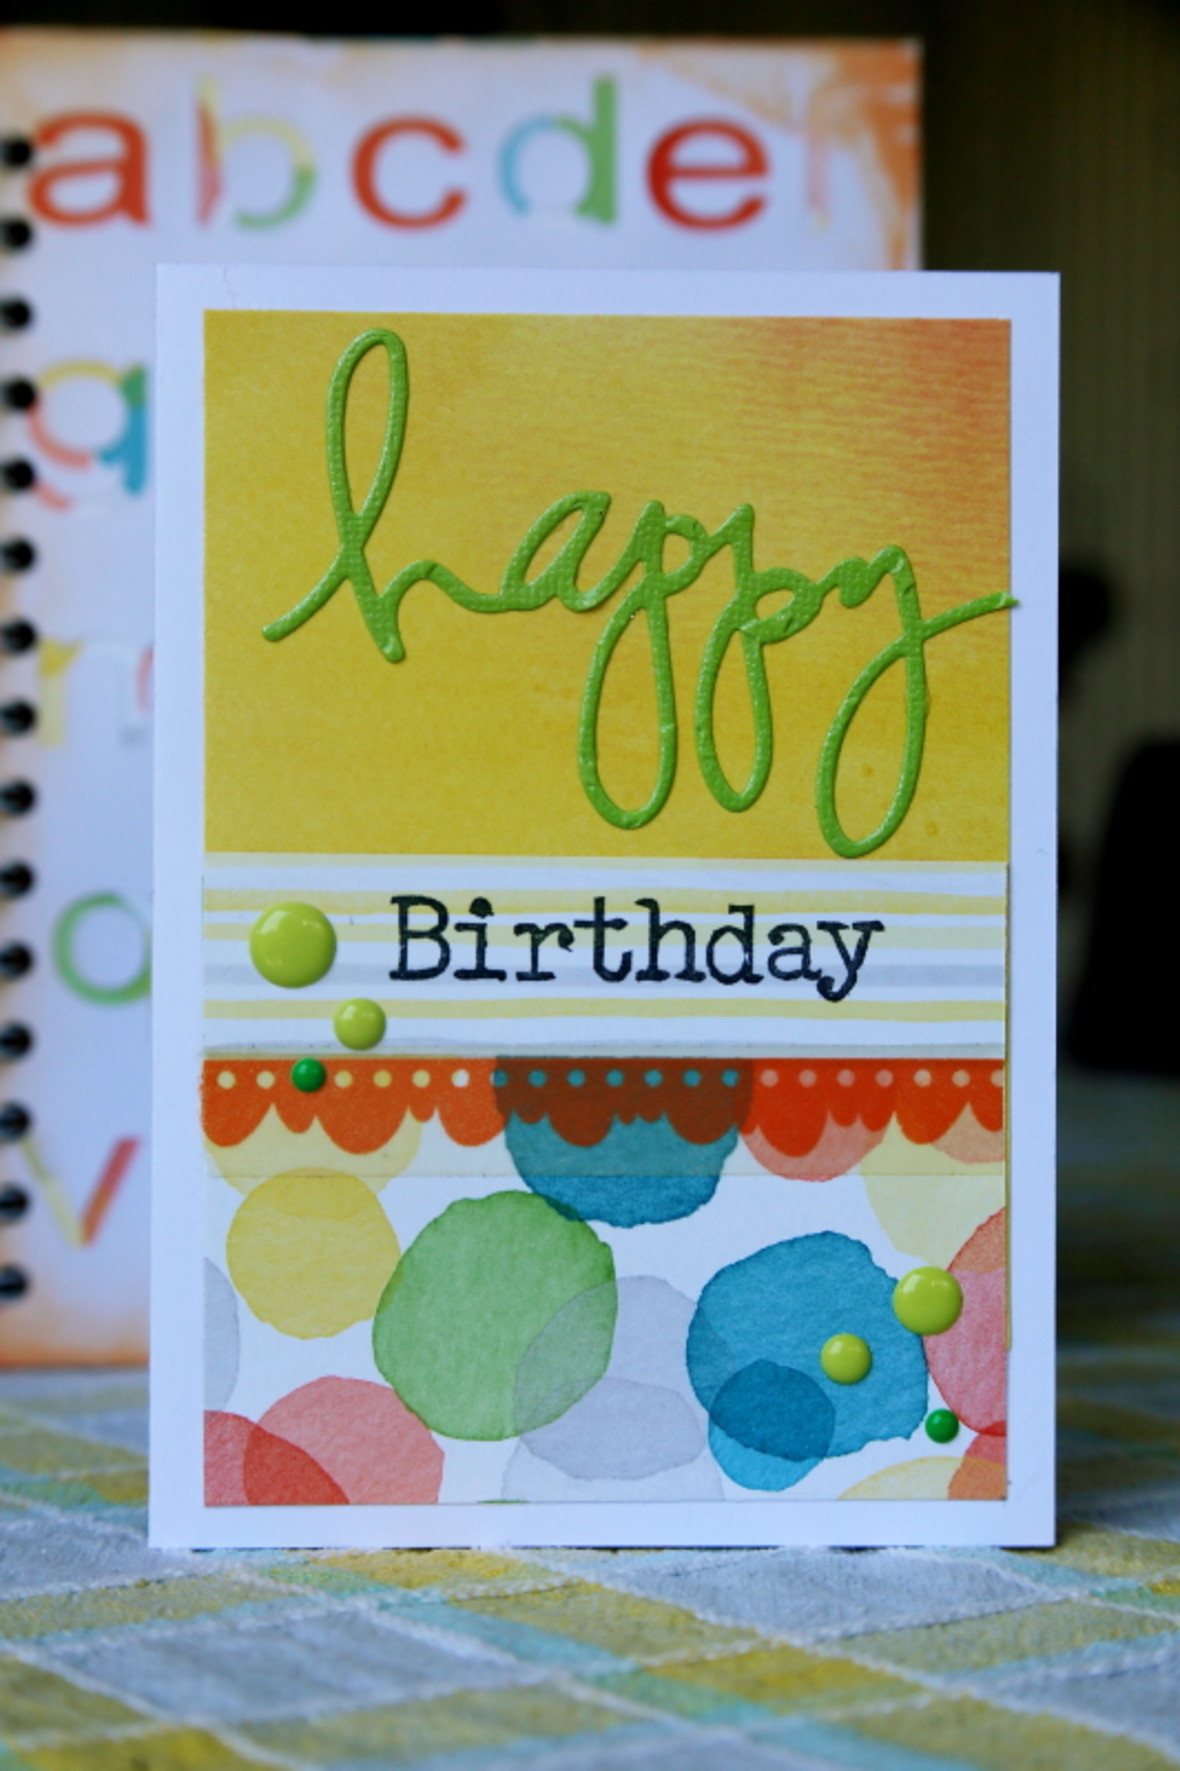 Happy birthday card for rachel.jpg sml img original